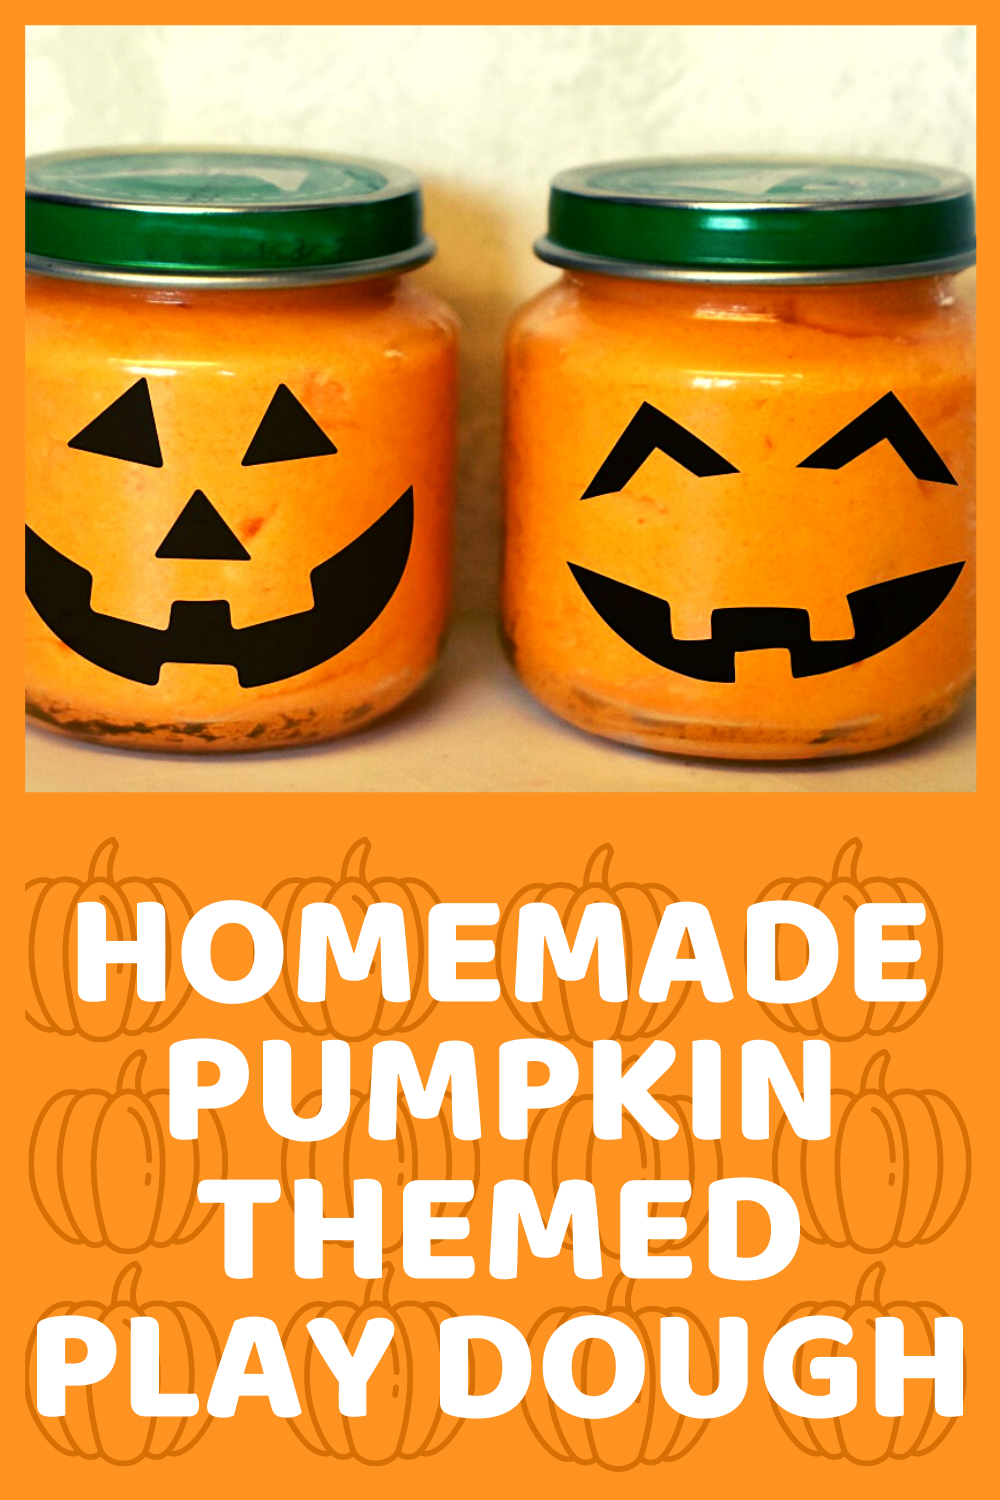 Homemade Pumpkin Themed Play Dough DIY